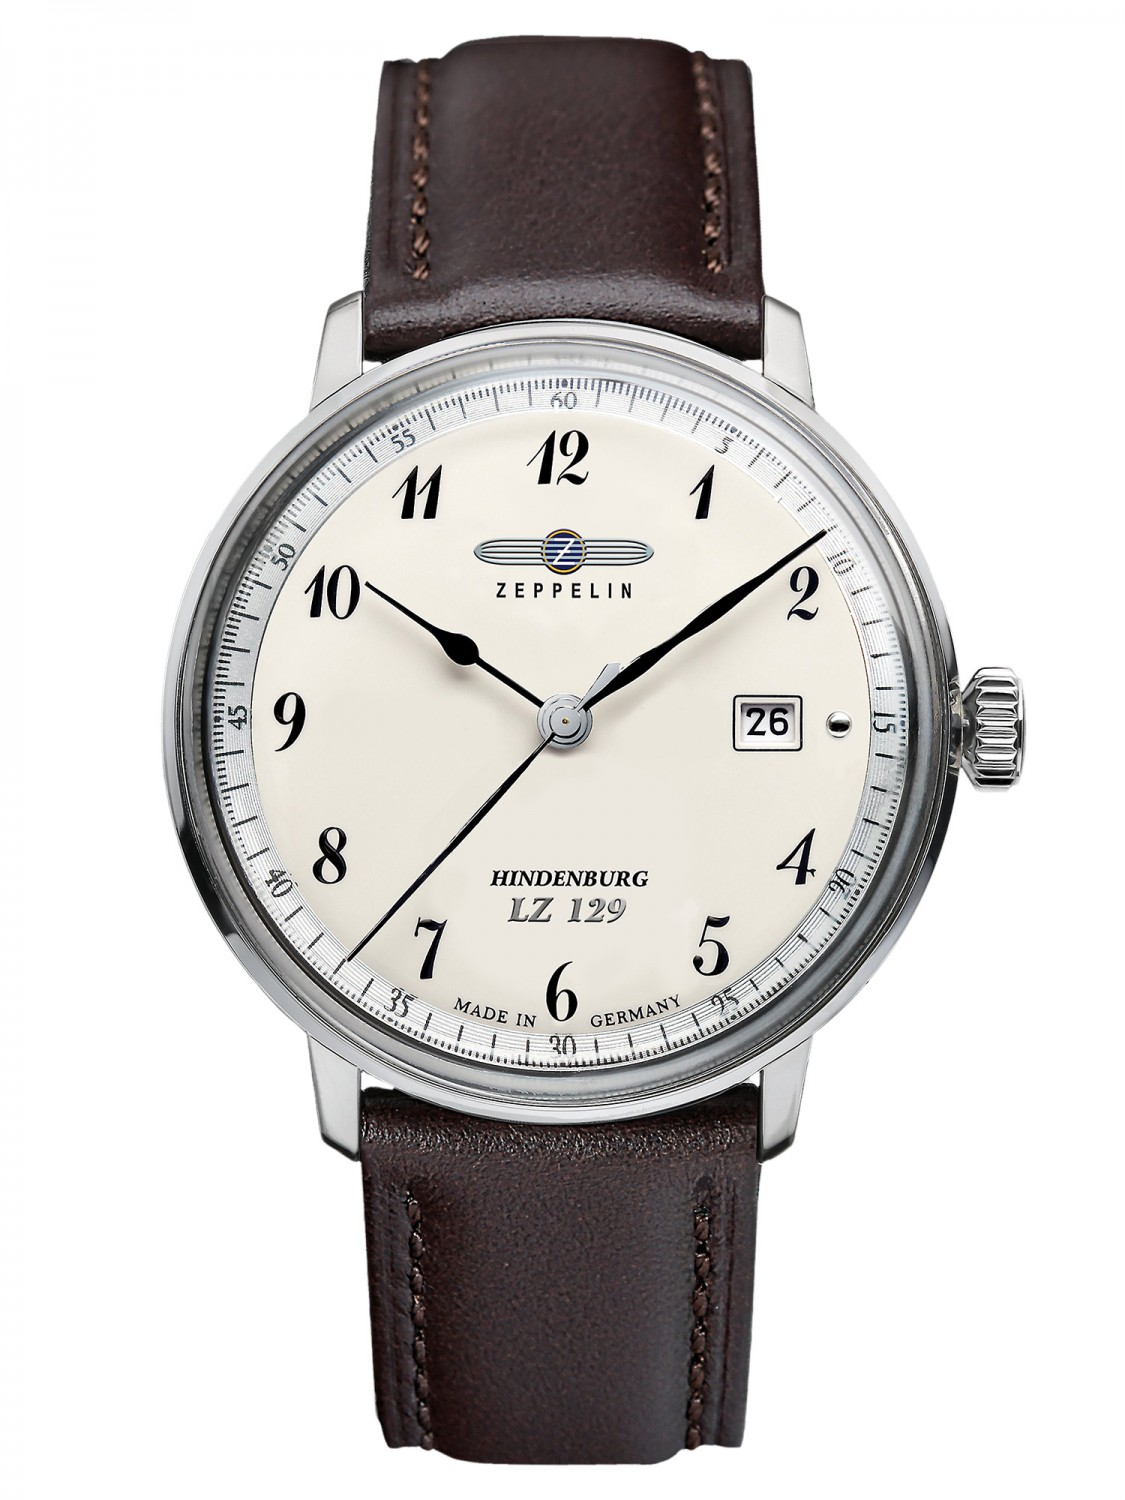 ZEPPELIN Hindenburg Gents Watch 7046-4 • uhrcenter